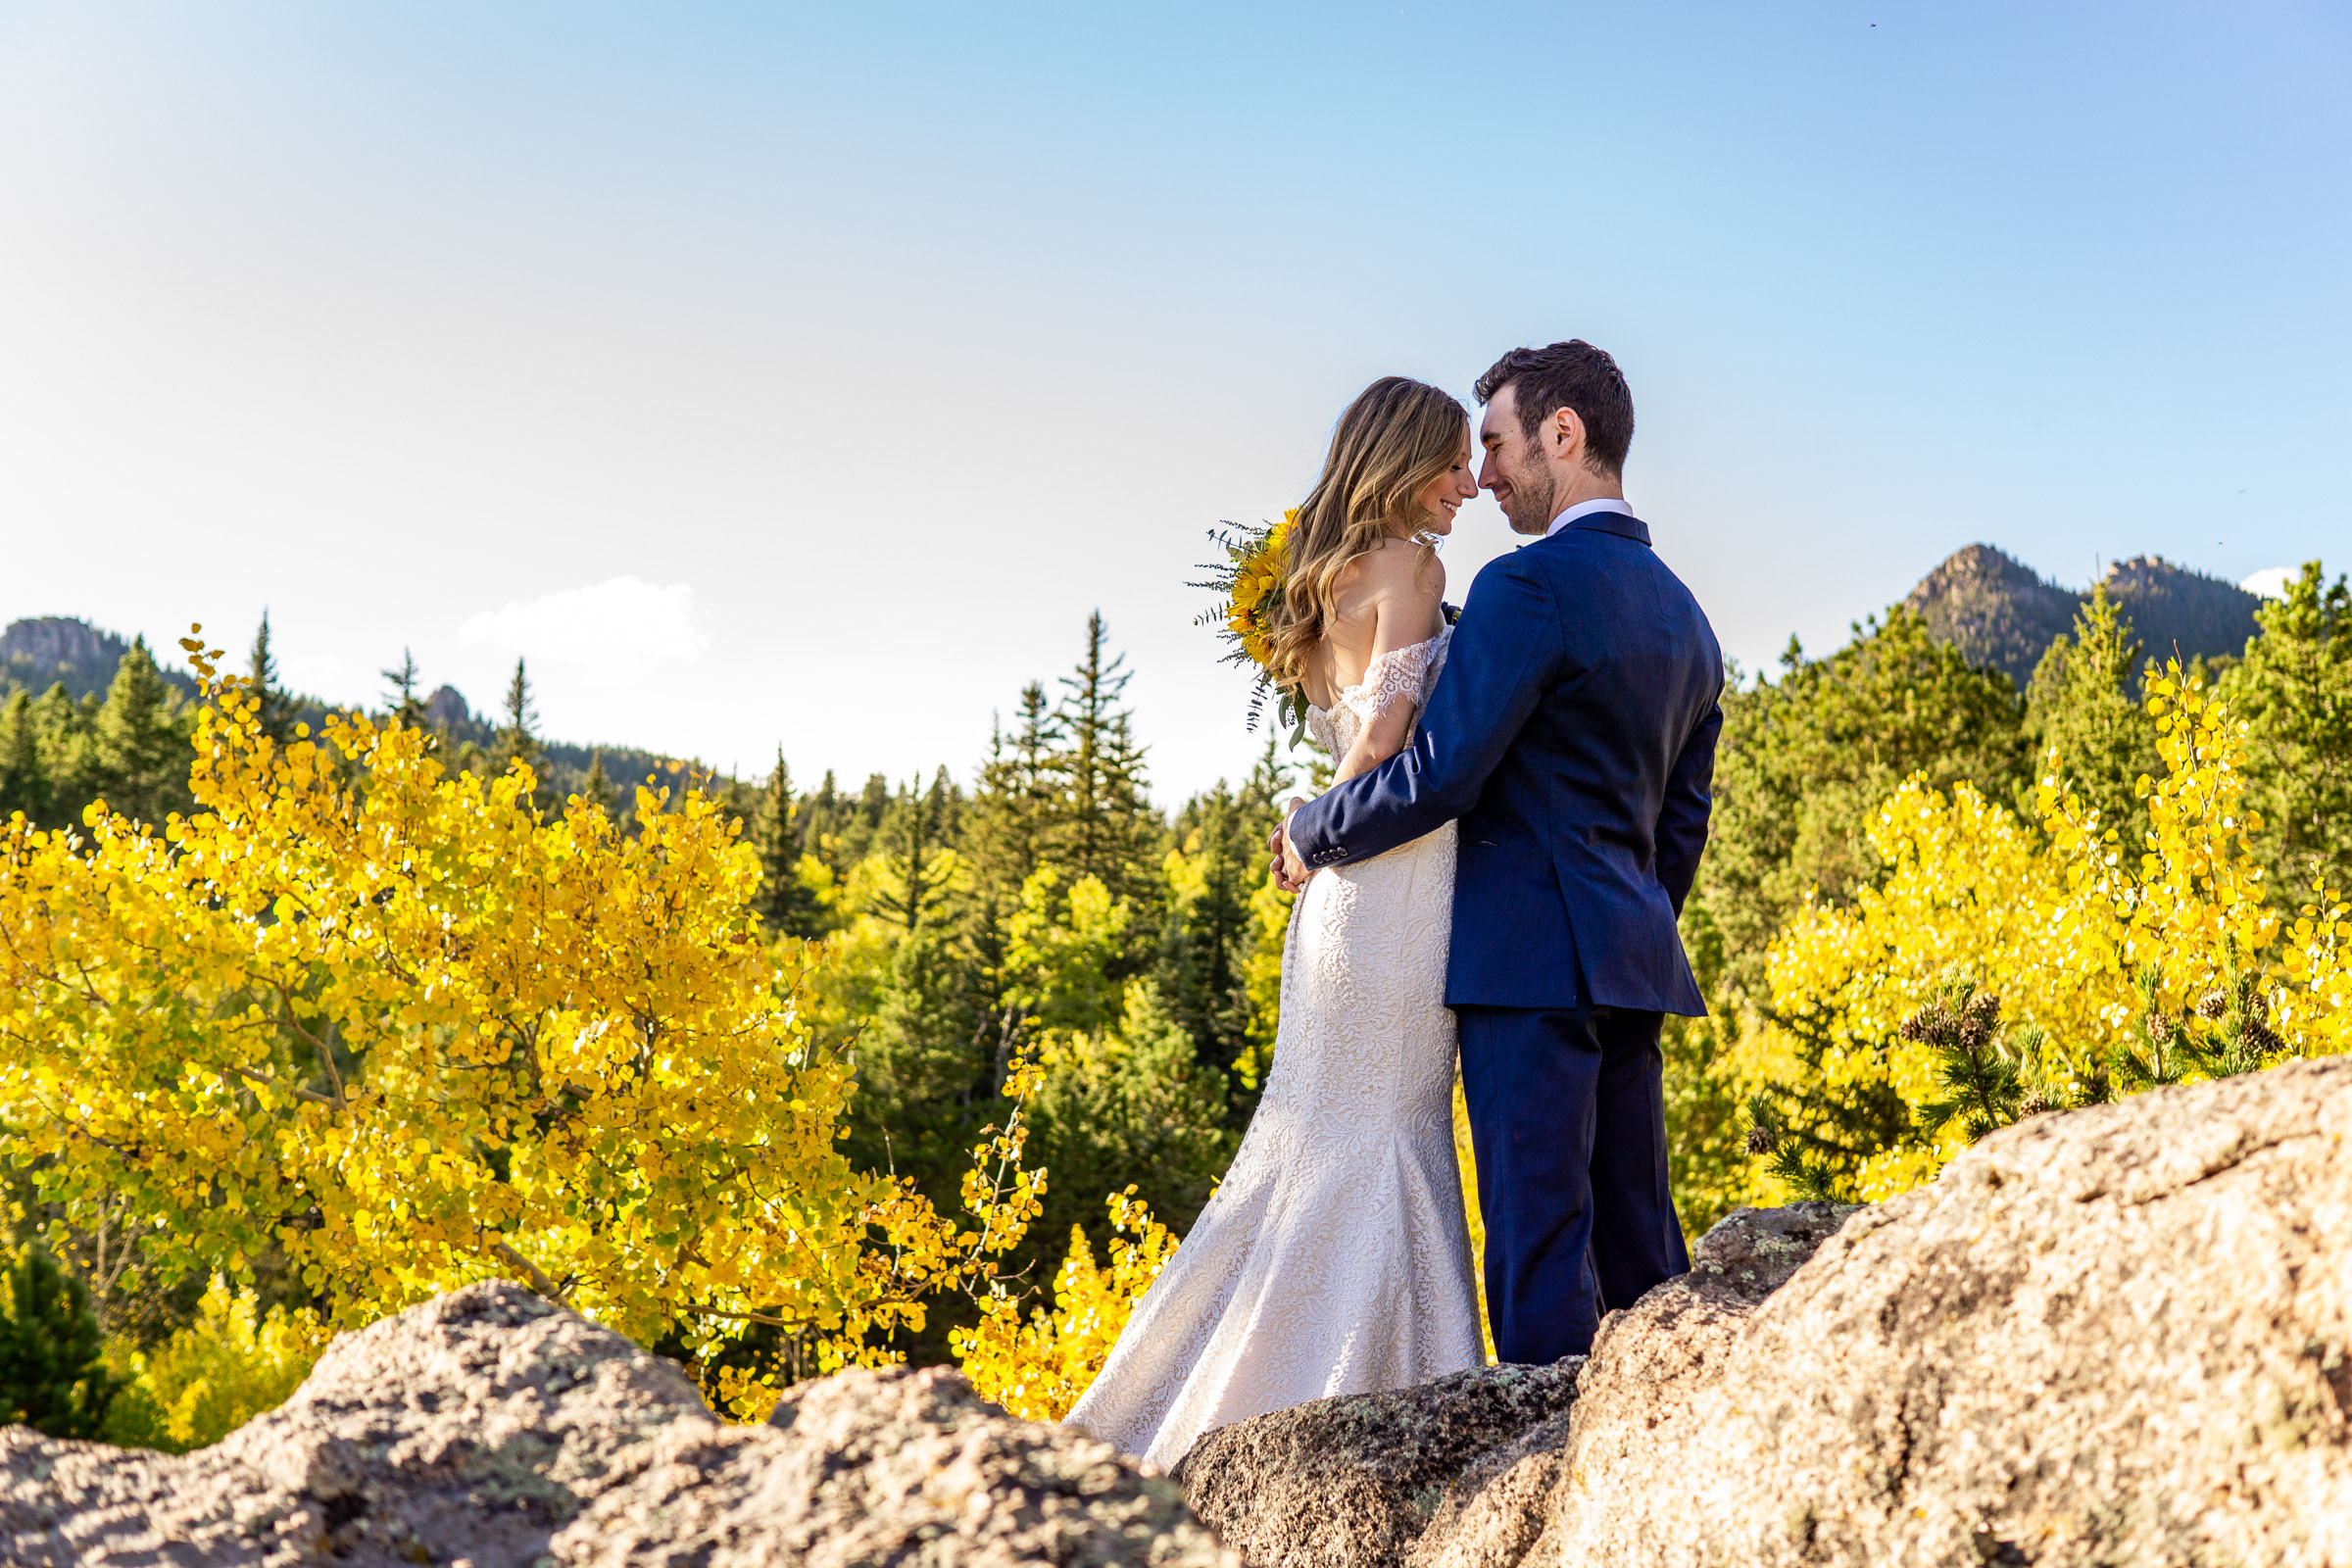 A bride (with a sunflower bouquet) and groom (wearing a blue wedding suit) embracing in front of a golden aspen forest and mountain. Photo by Gabby Jockers Photography. colorado elopement, colorado elopement photography, golden gate canyon state park, sunset elopement, hiking elopement, fall wedding, mountain wedding, adventure photos, mountain elopement, fall elopement, adventure elopement, denver colorado photographer, elopement photographer